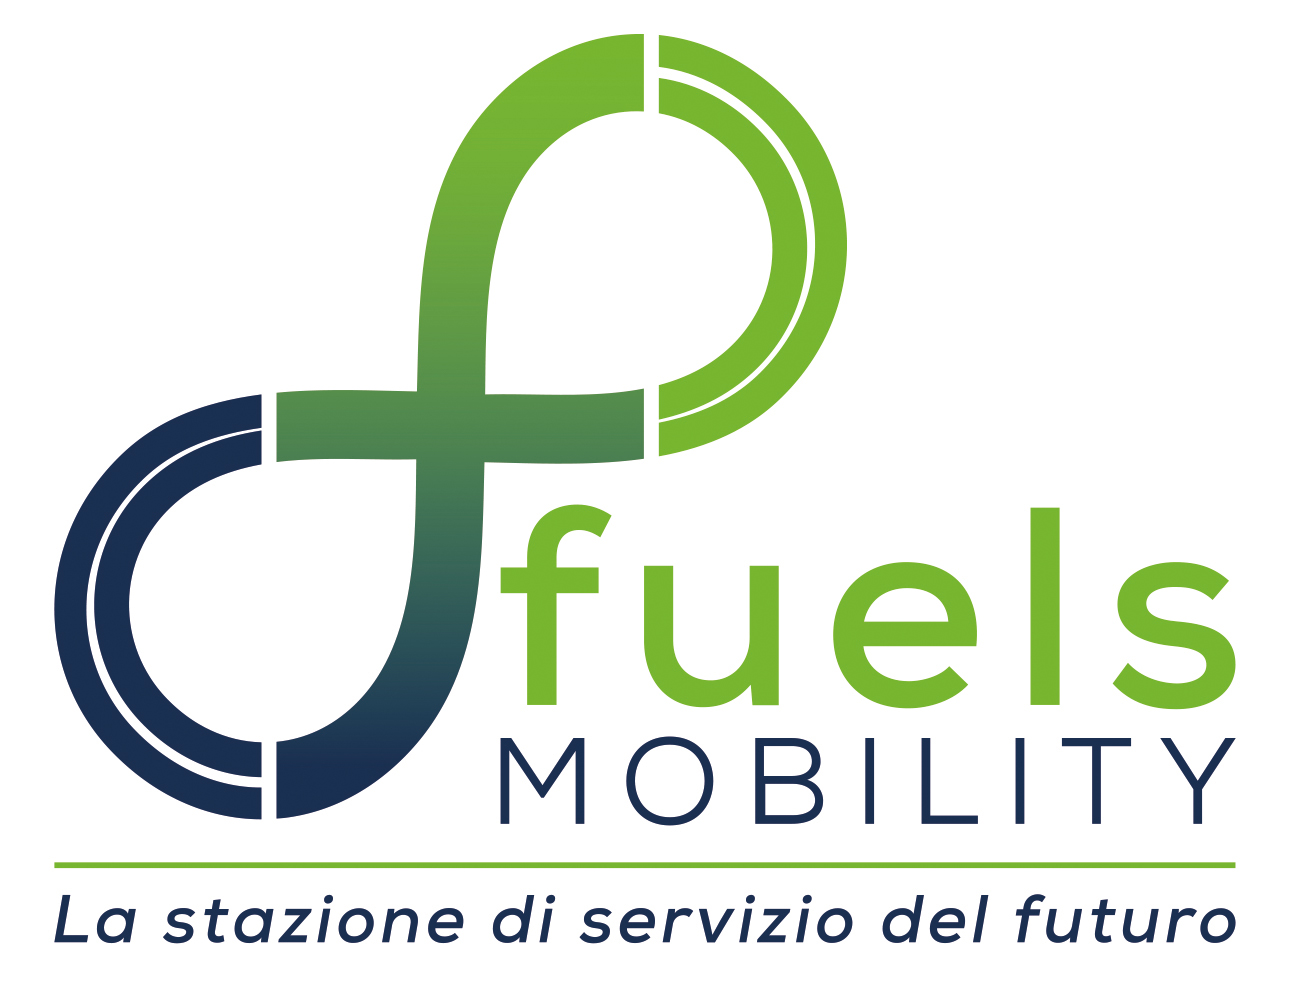 Fuels Mobility